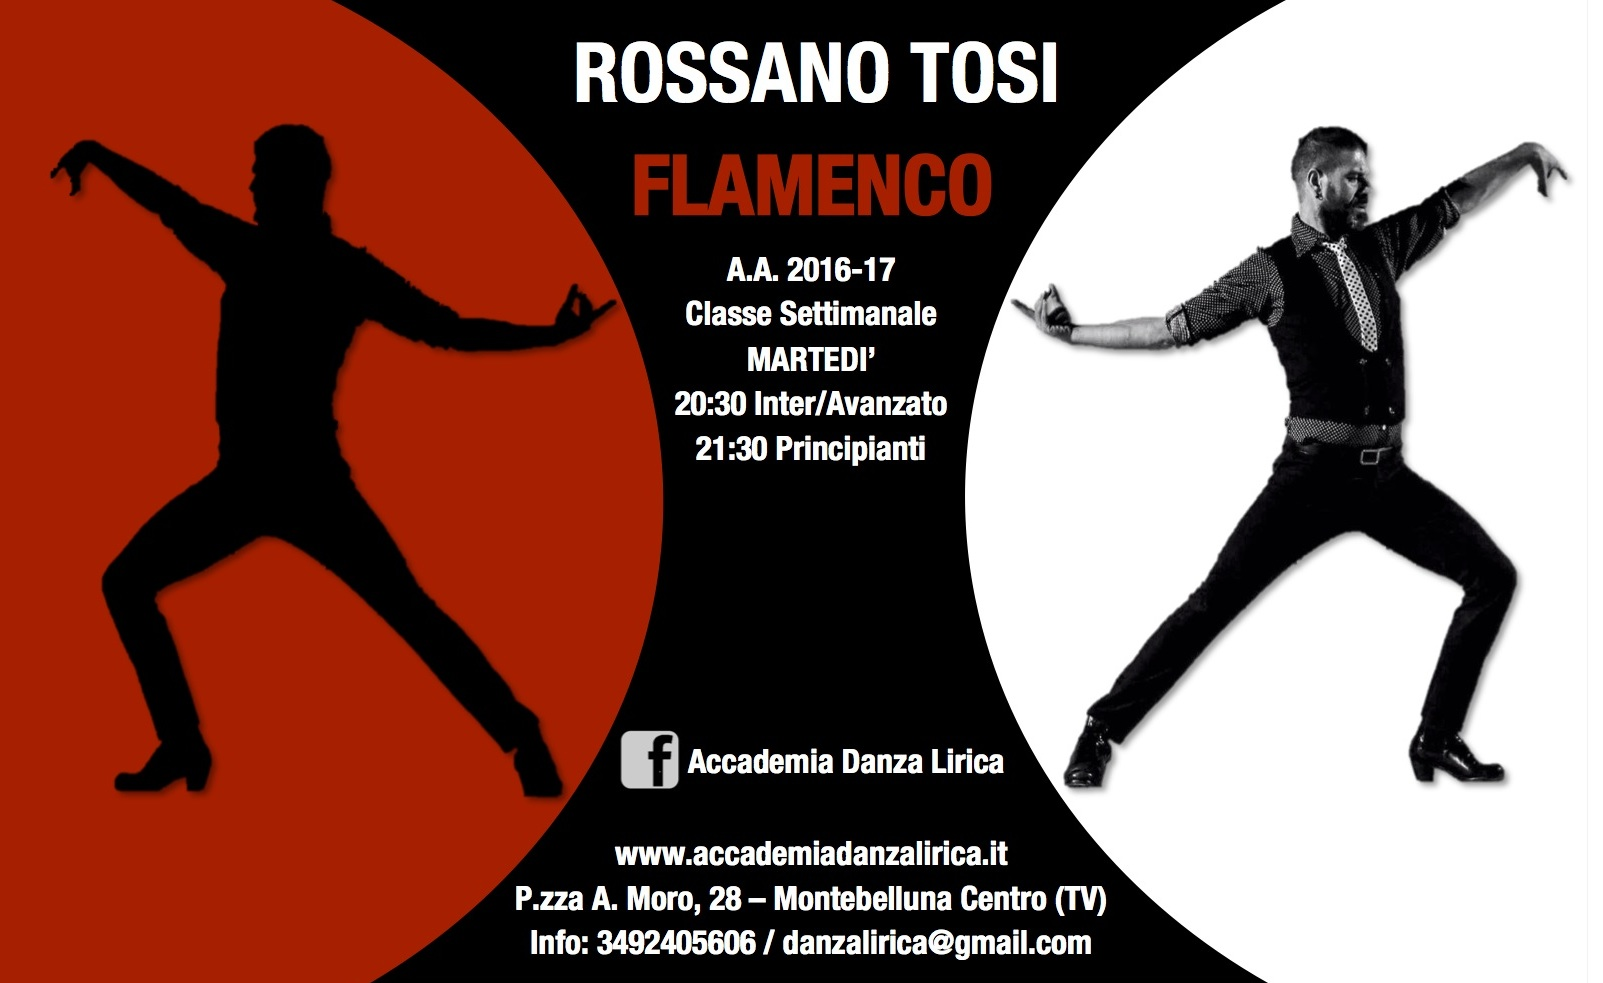 flamenco flyer